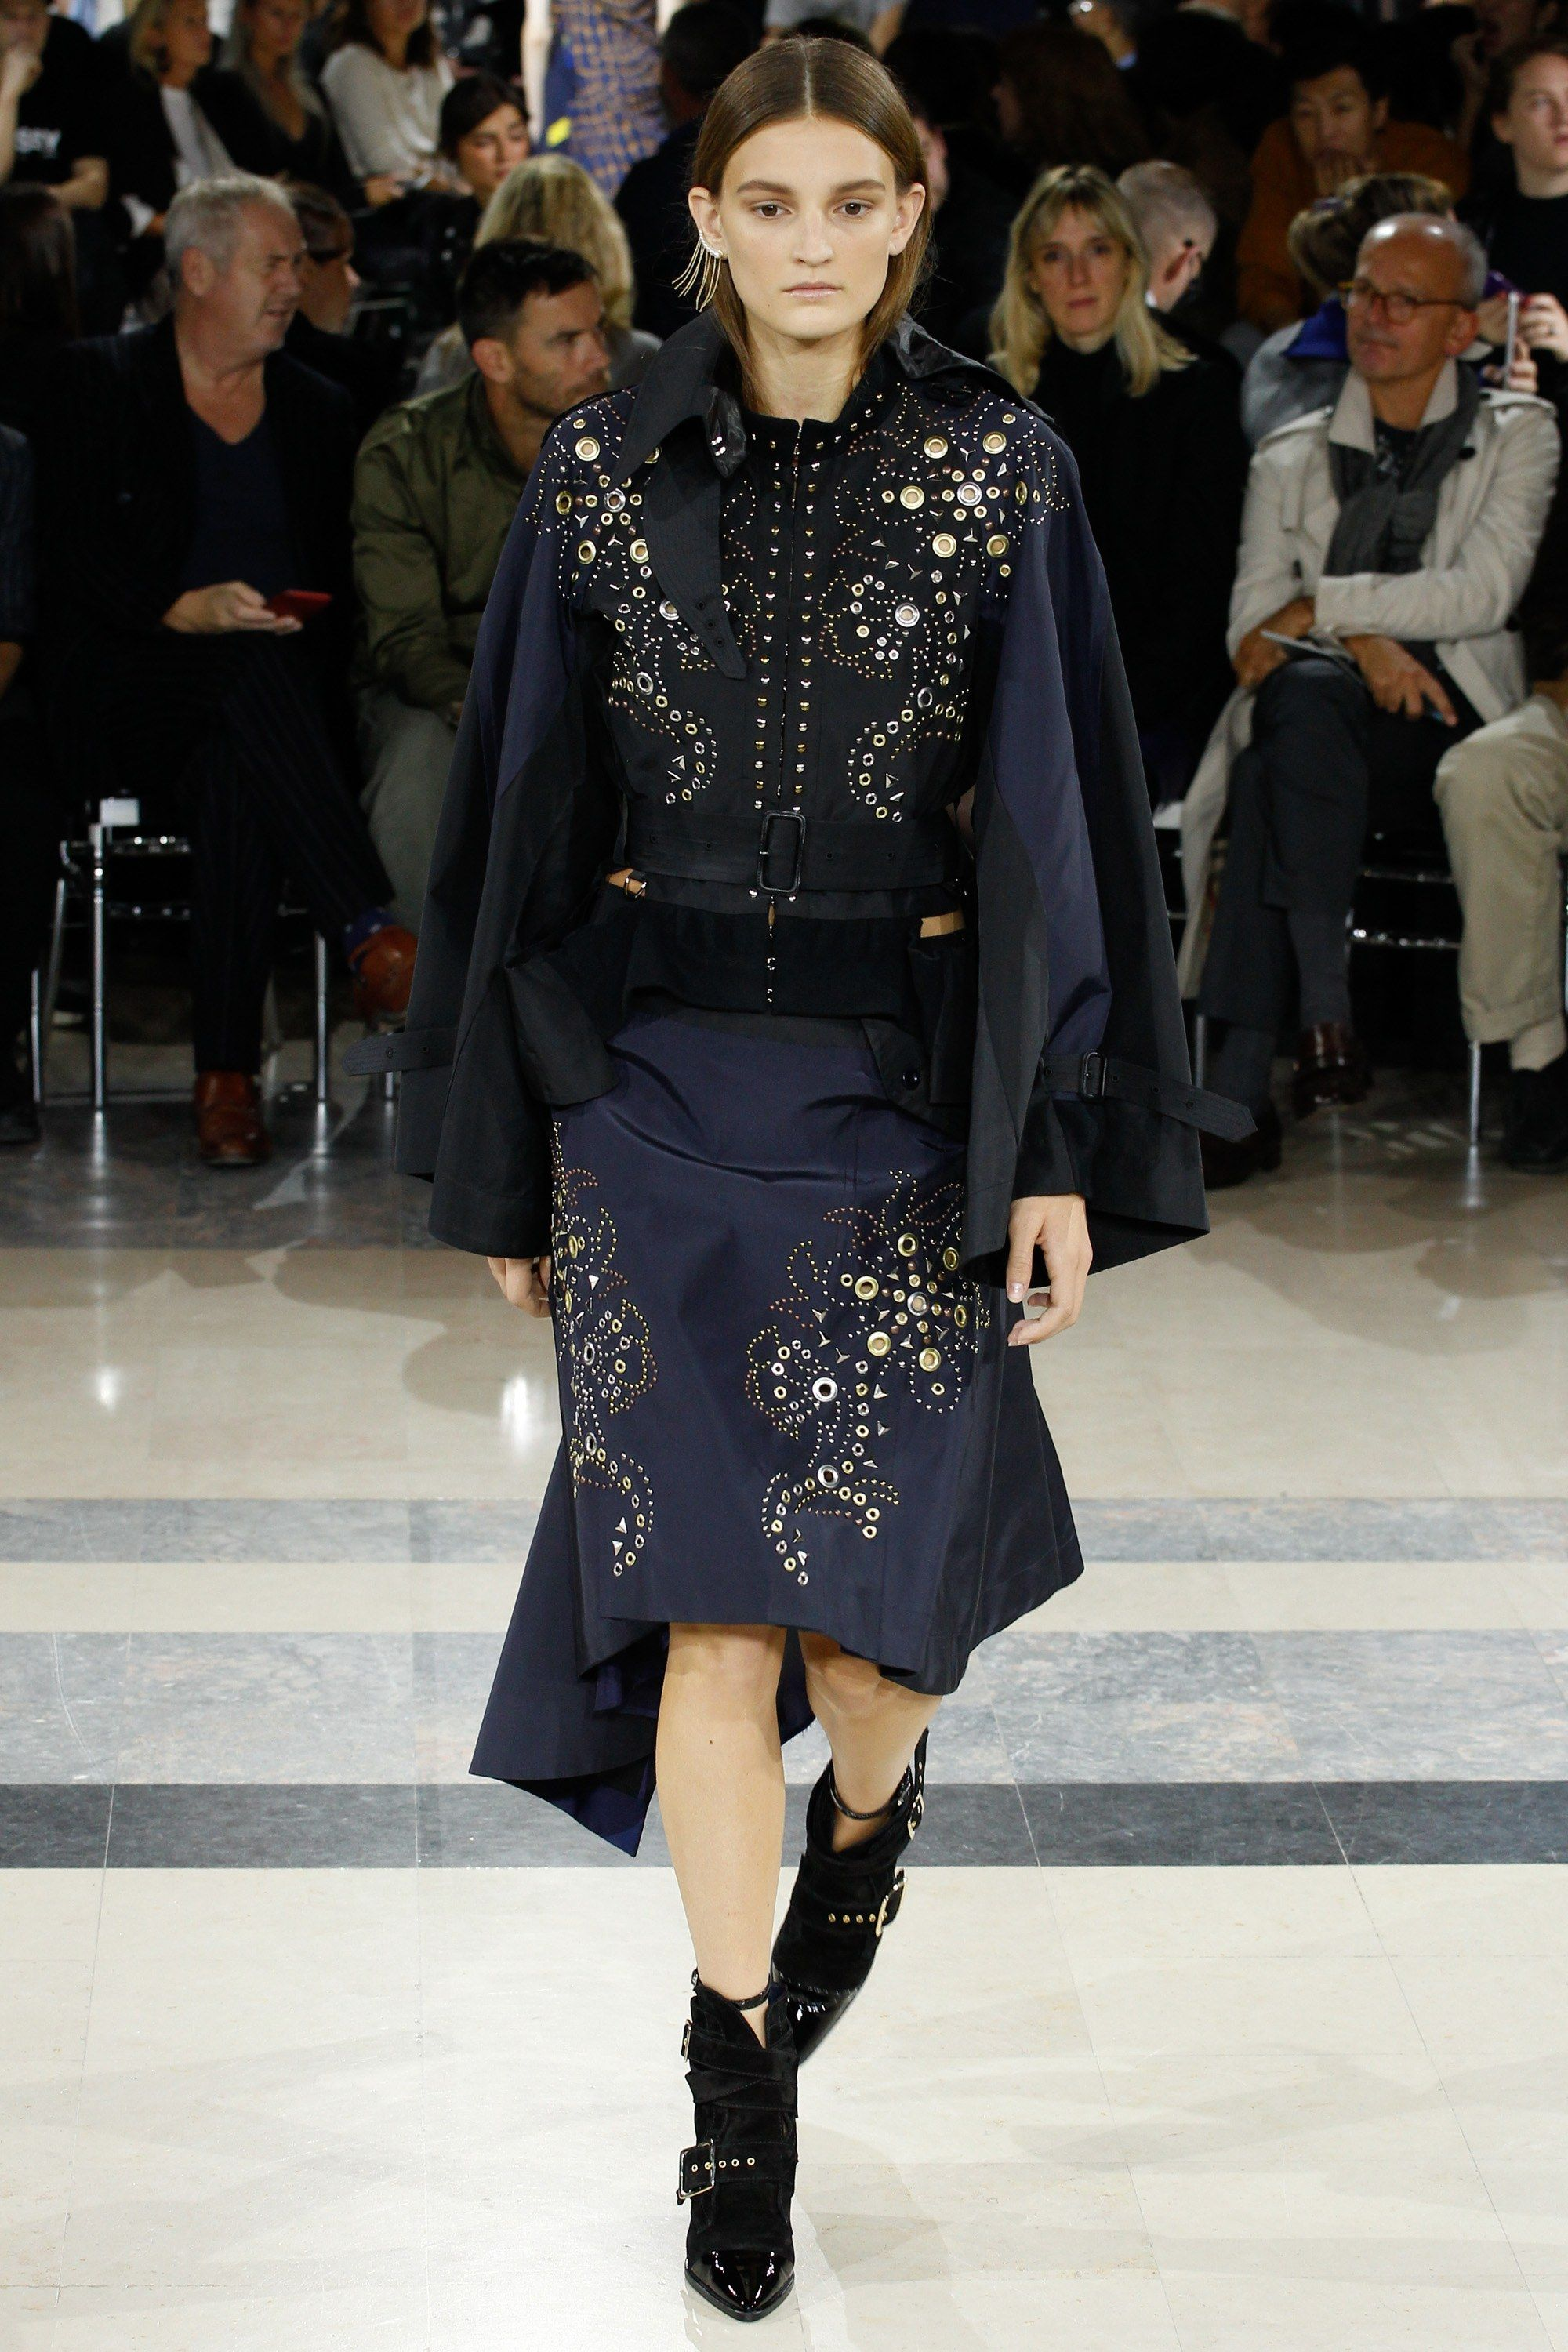 No one blinked at the marc jacobs fashion show when a model wore a - Sacai Spring 2016 Ready To Wear Fashion Show